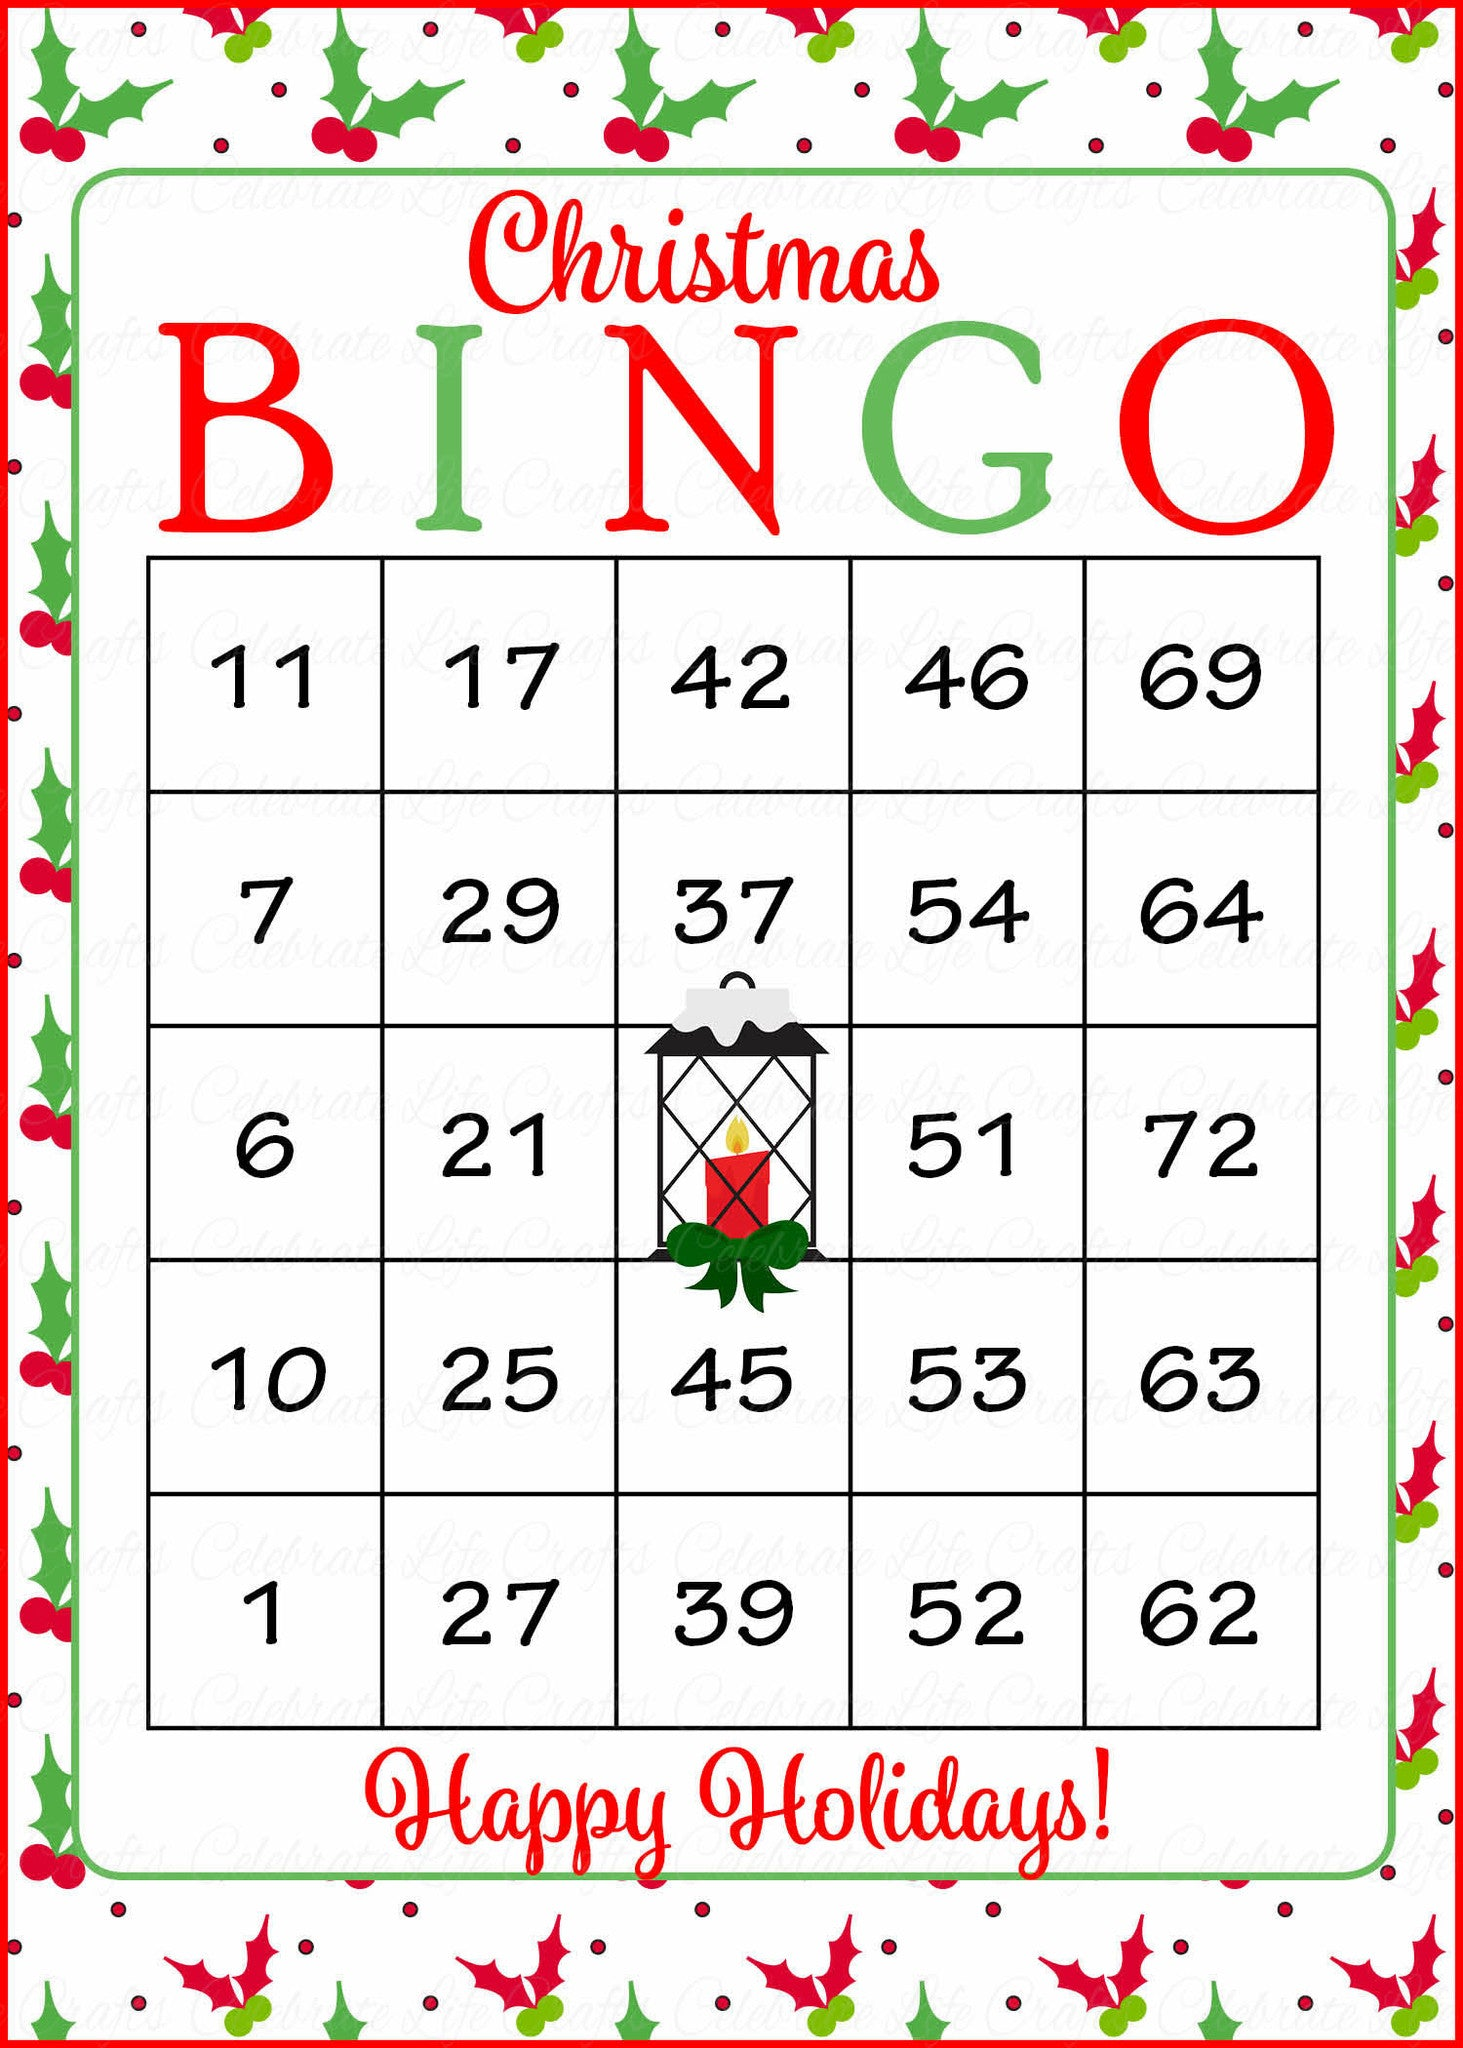 photograph about Printable Christmas Bingo Cards called Xmas Bingo Sport Obtain for Family vacation Social gathering Guidelines